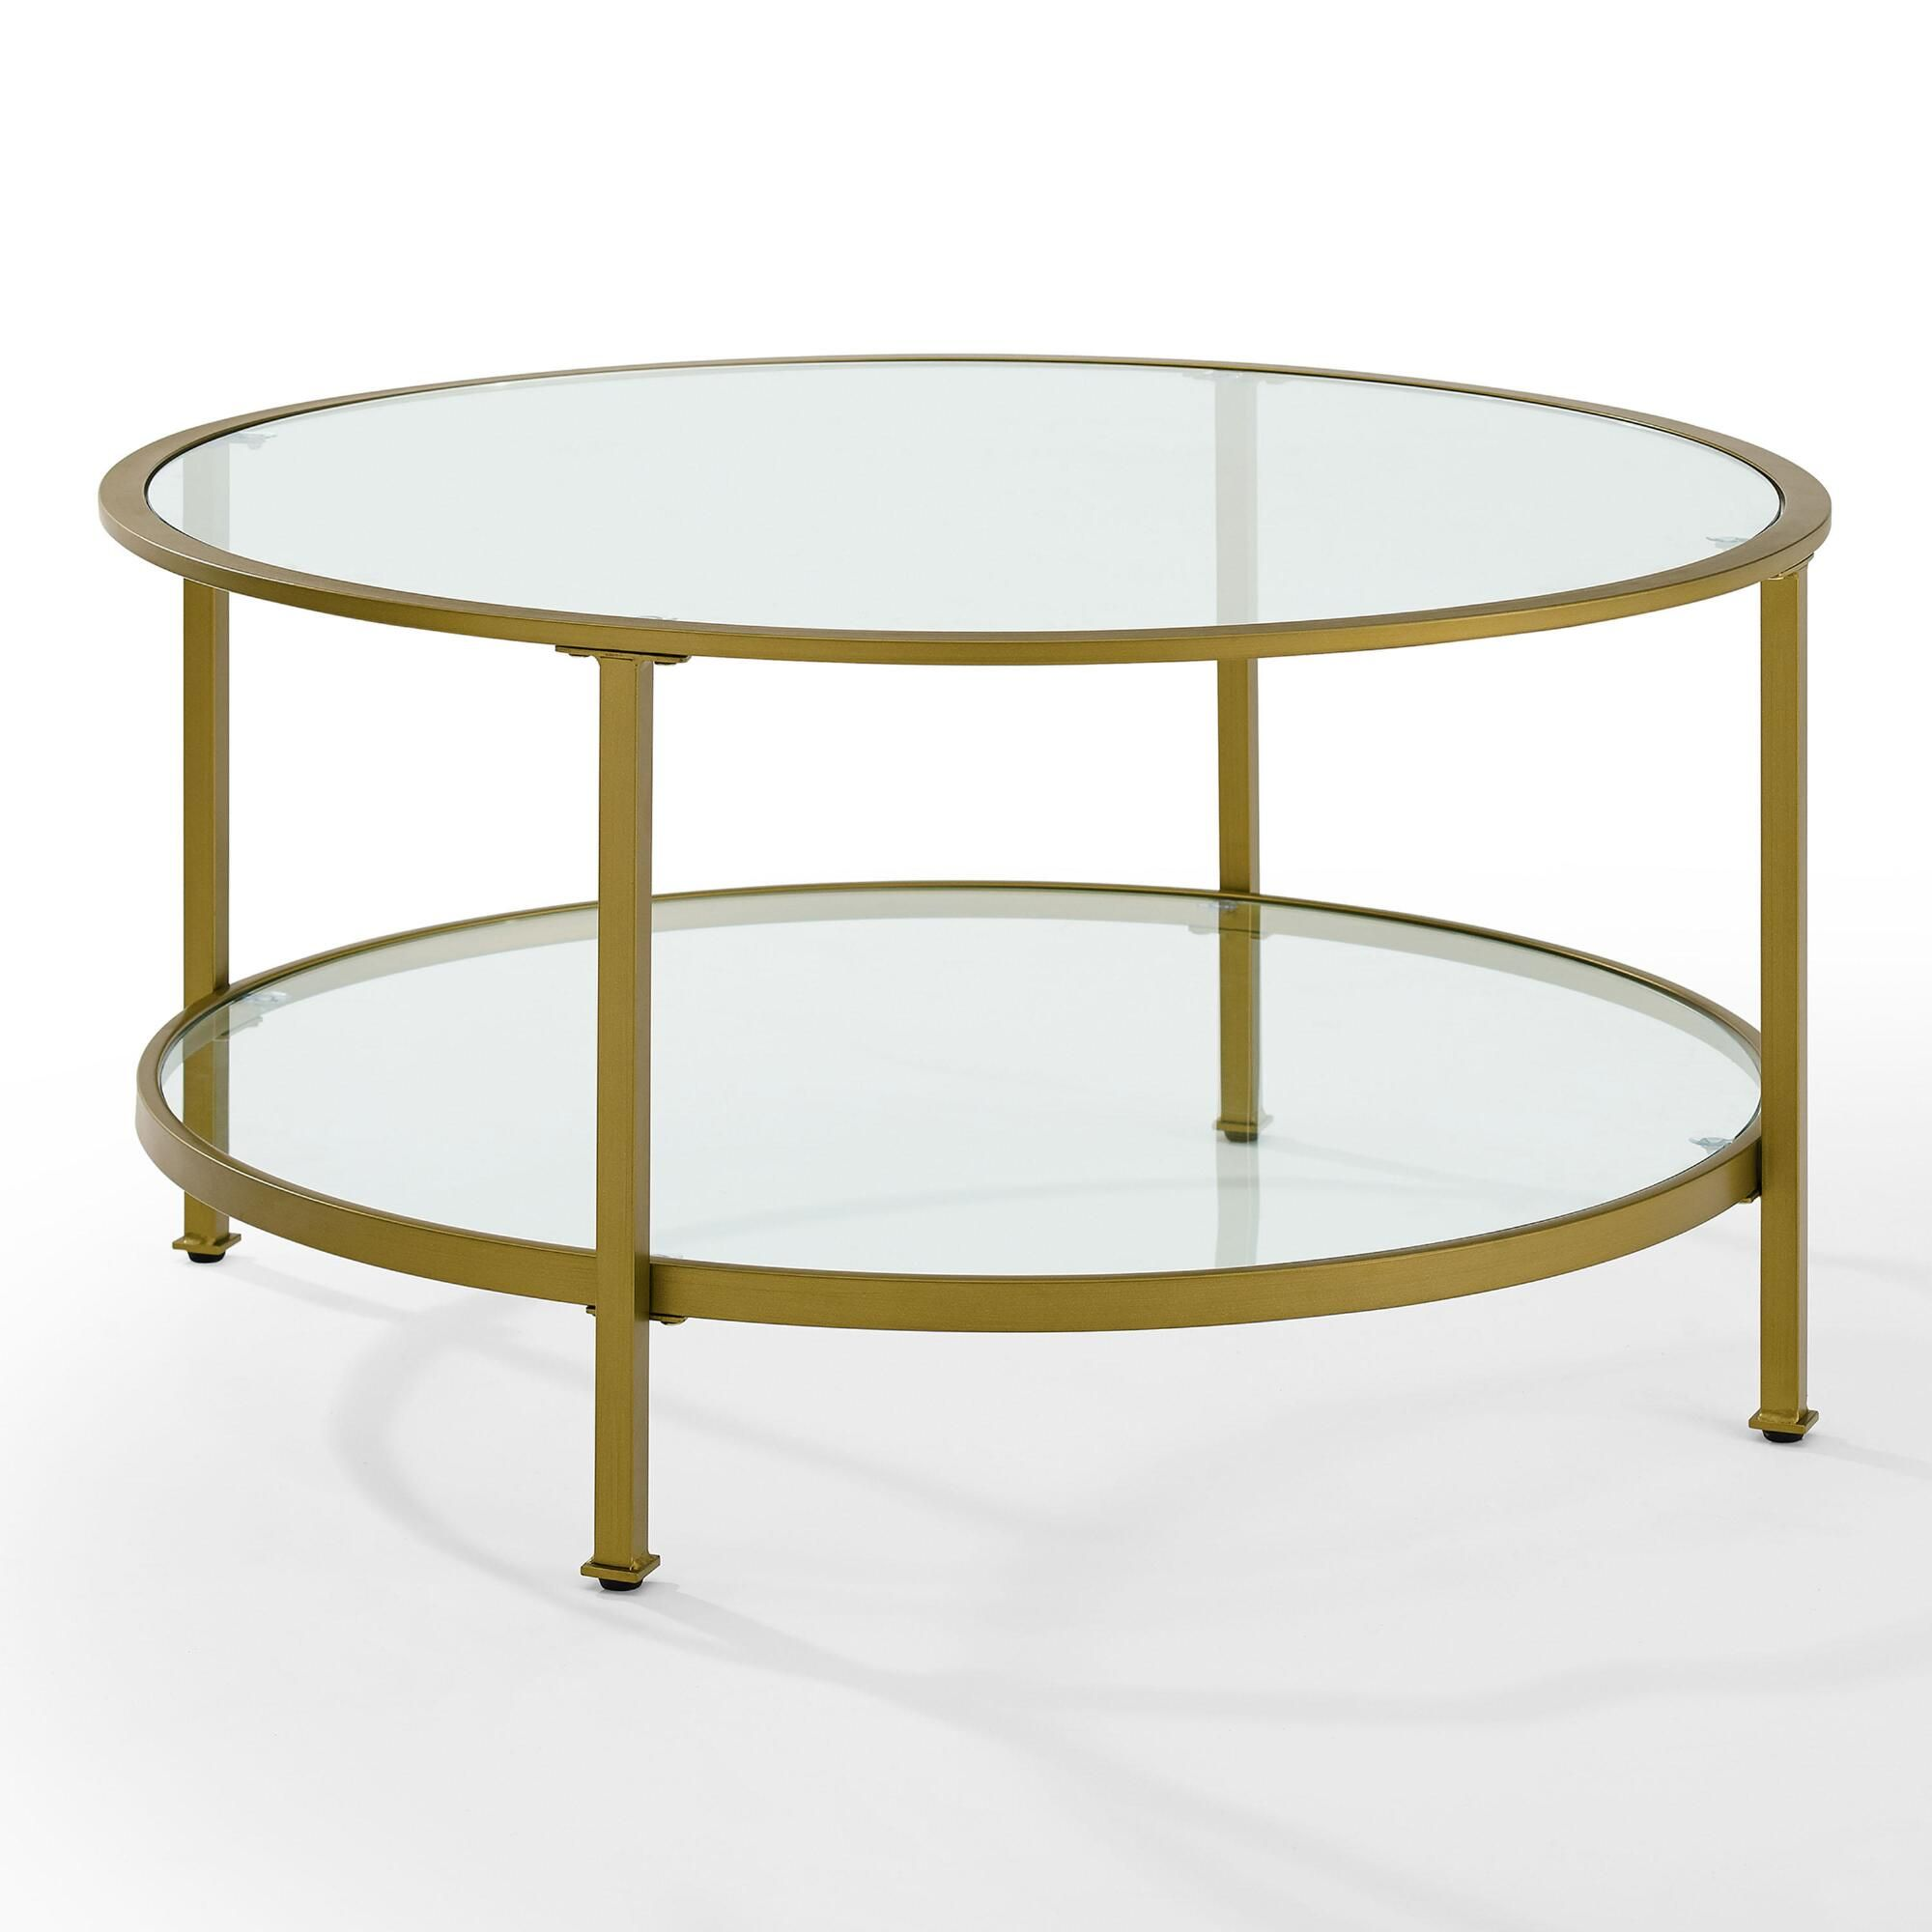 Round Gold Milayan Coffee Table With Shelf Glass By World Market Round Glass Coffee Table Coffee Table Gold Glass Coffee Table [ jpg ]